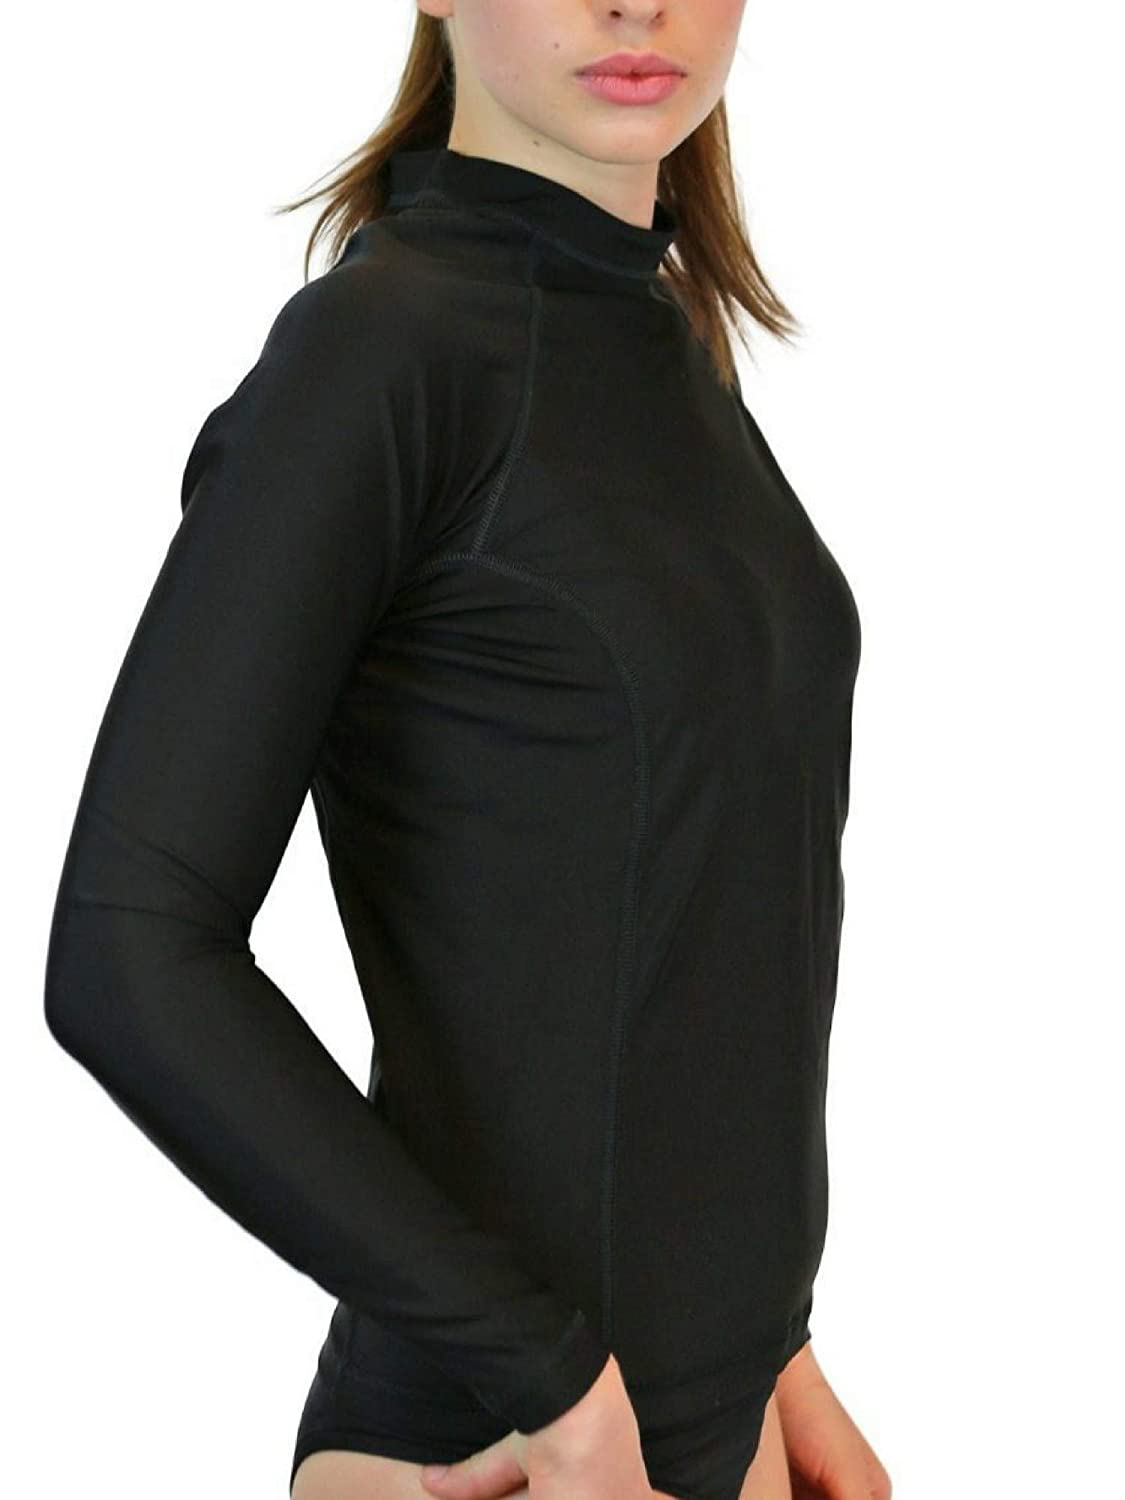 Swim Shirts For Women Uv 50 Sun Protection Long Sleeve Circuit Board Tshirts And Custom Clothing Rash Guard Swimsuit Tops With Spf Skin Made In Usa Sports Outdoors